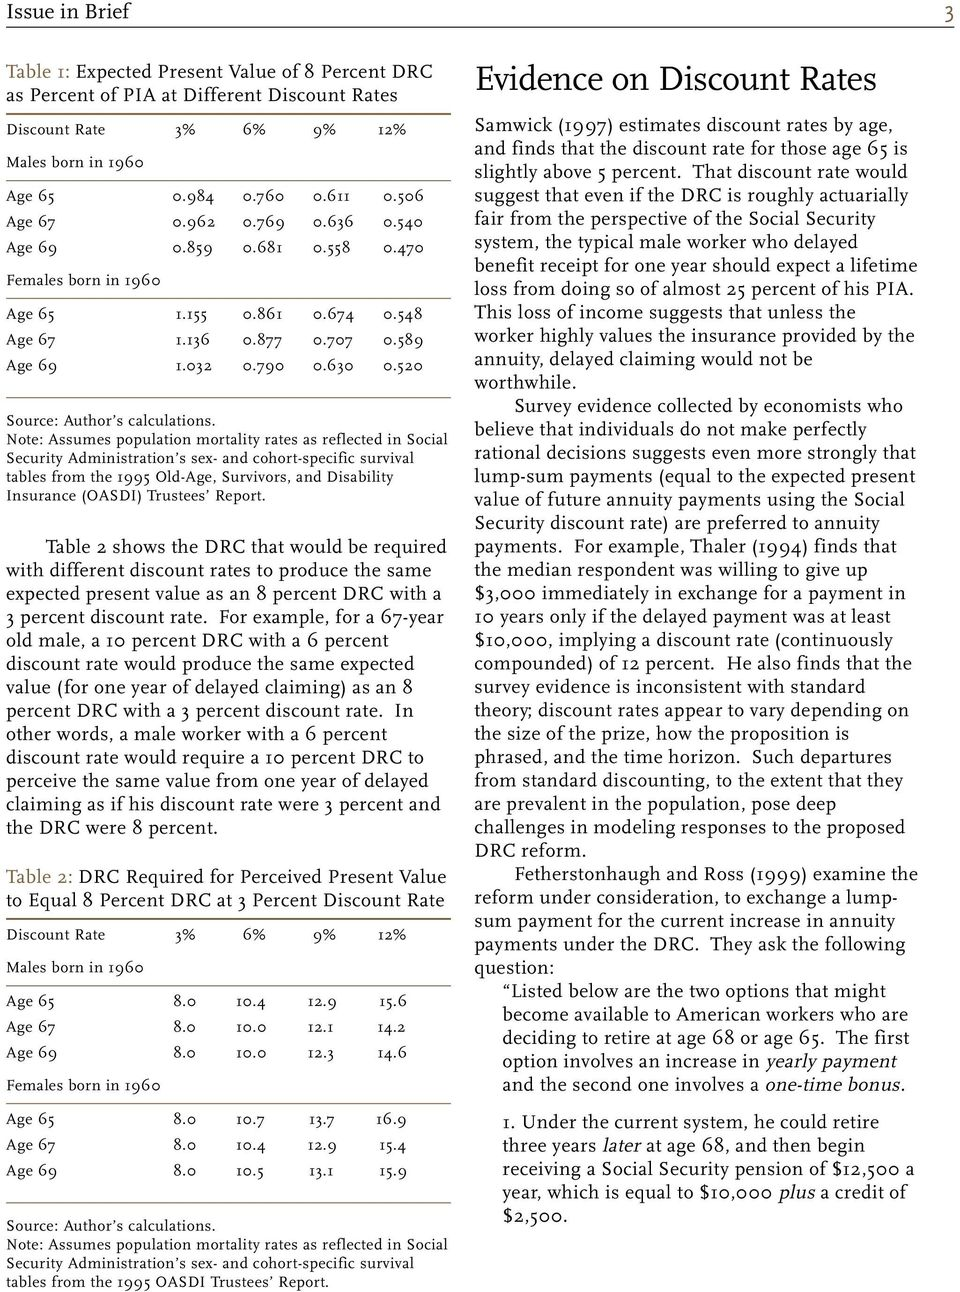 Note: Assumes population mortality rates as reflected in Social Security Administration s sex- and cohort-specific survival tables from the 1995 Old-Age, Survivors, and Disability Insurance (OASDI)